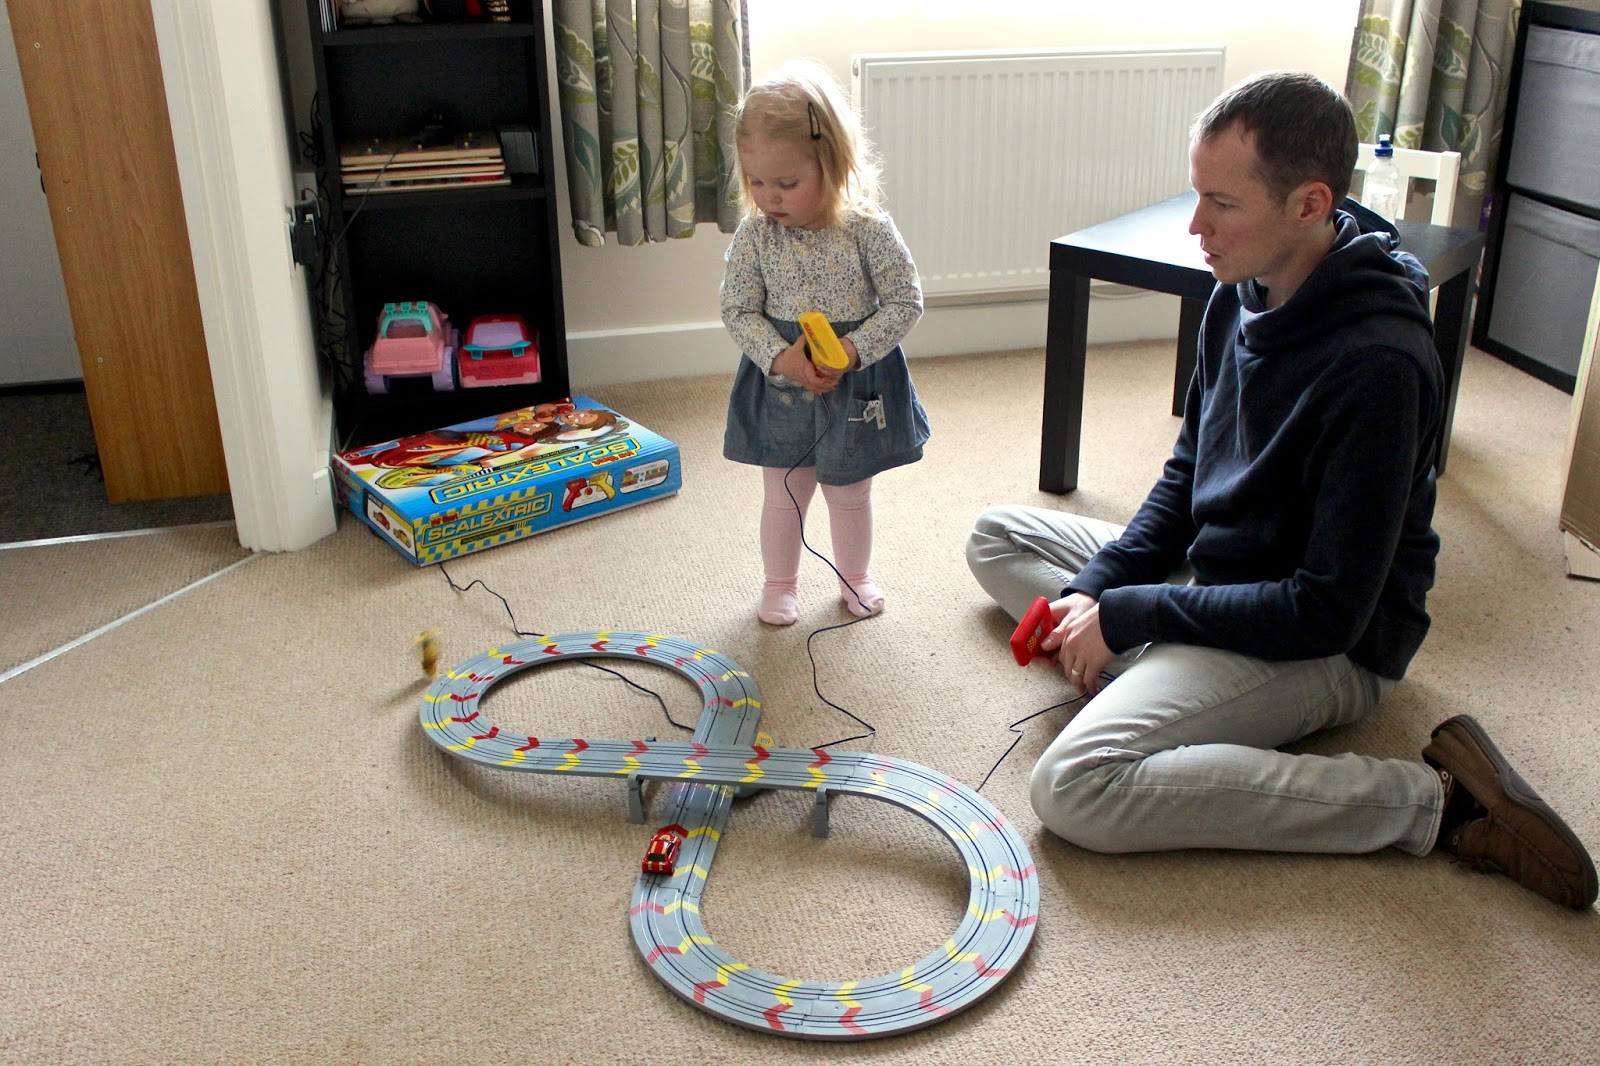 Elise is stood next to the scalextric track. My husband is sitting. They are both holding controllers and racing the cars on the track. Elise has pushed the trigger too much and her car has come off the track.